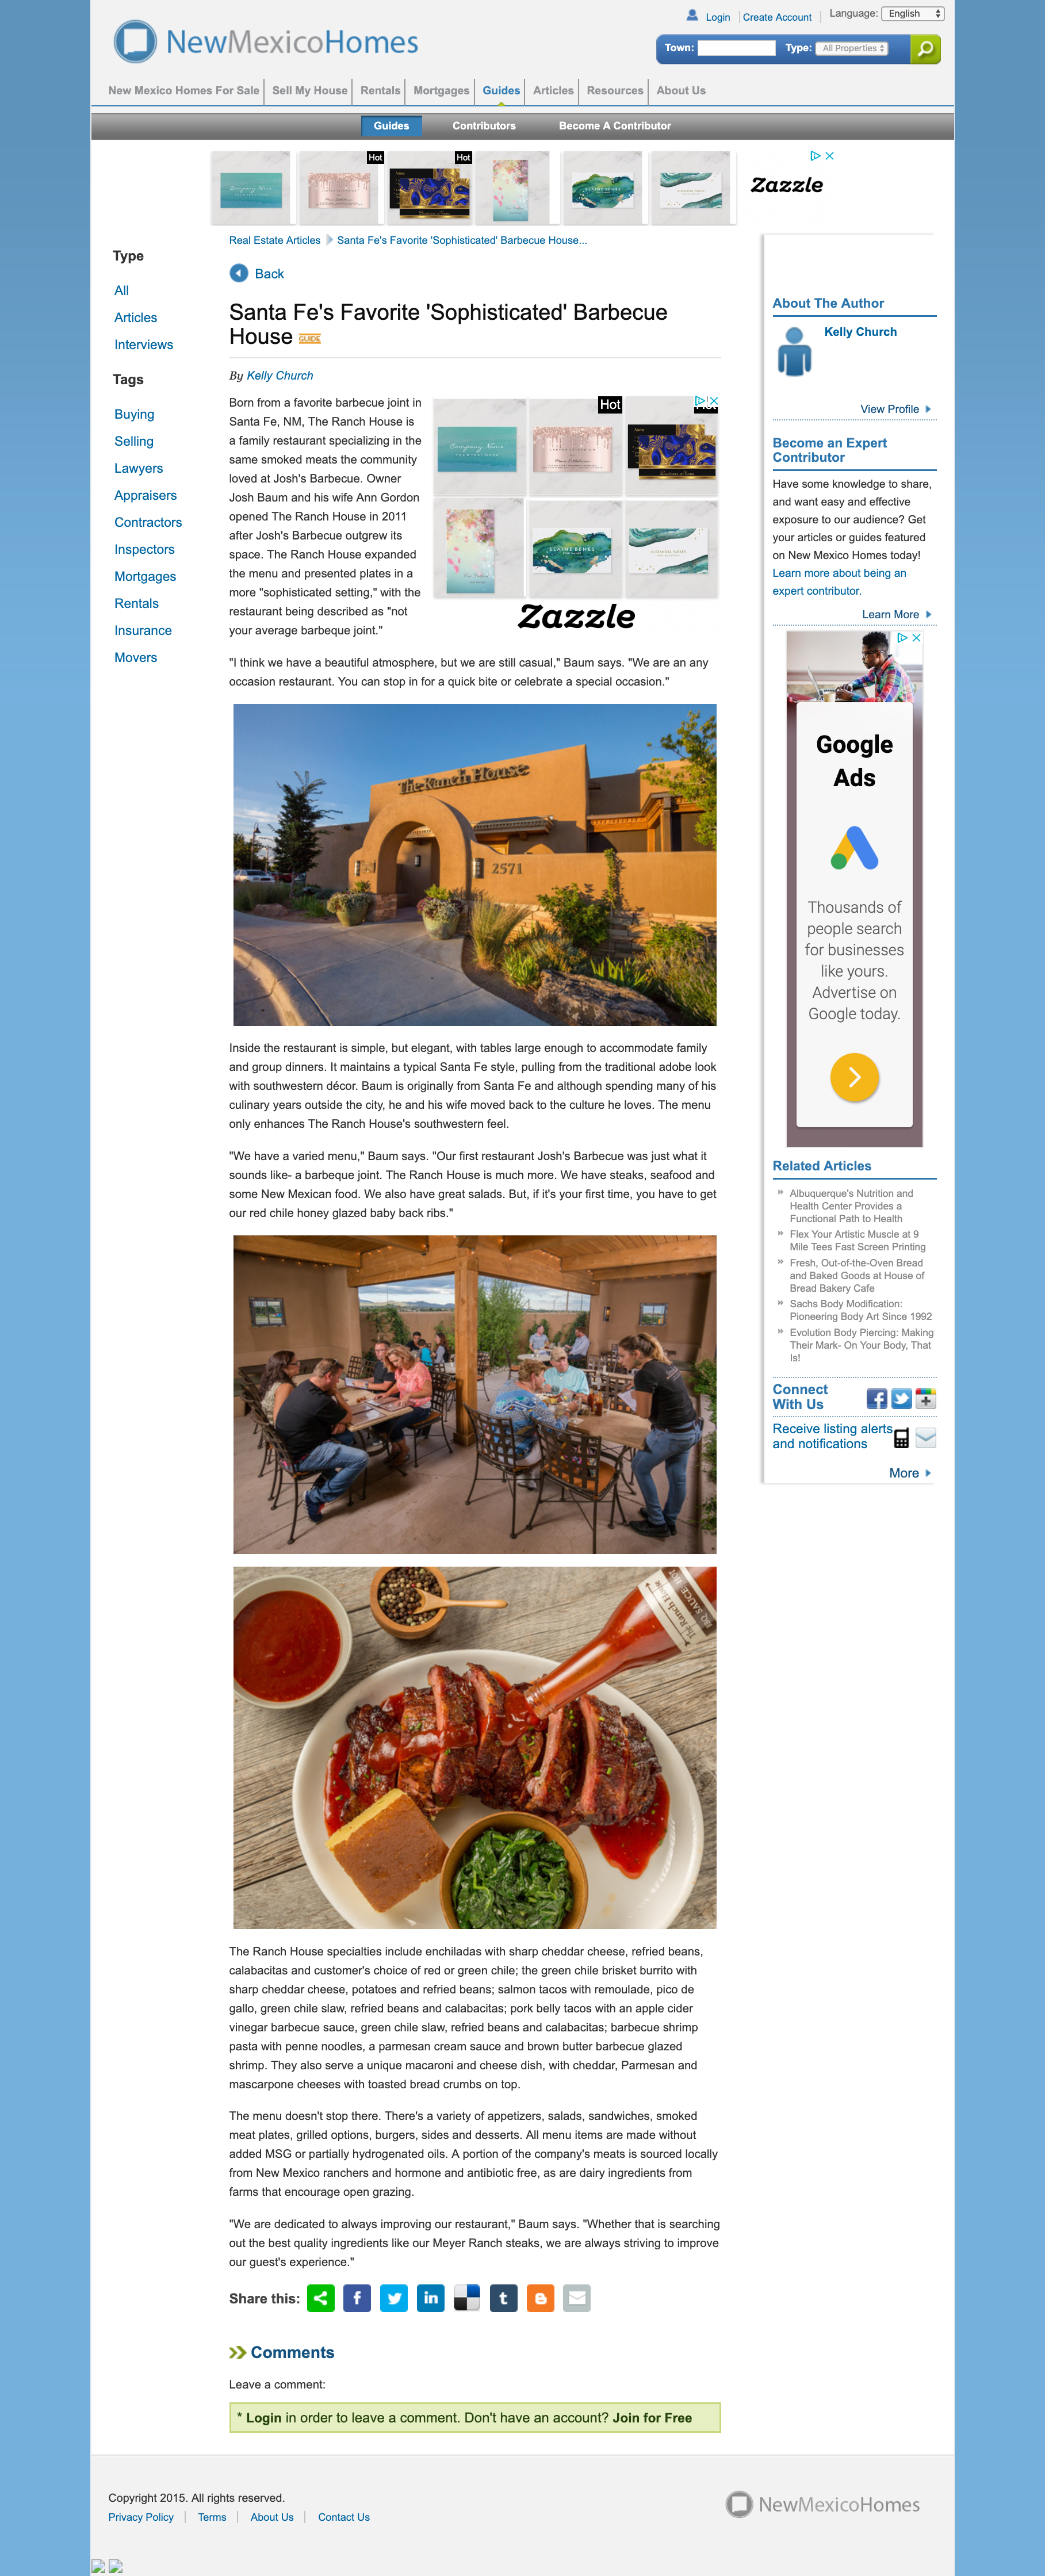 New Mexico Home-Santa Fe's Favorite 'Sophisticated' Barbecue House - www.newmexicohomes.com.png